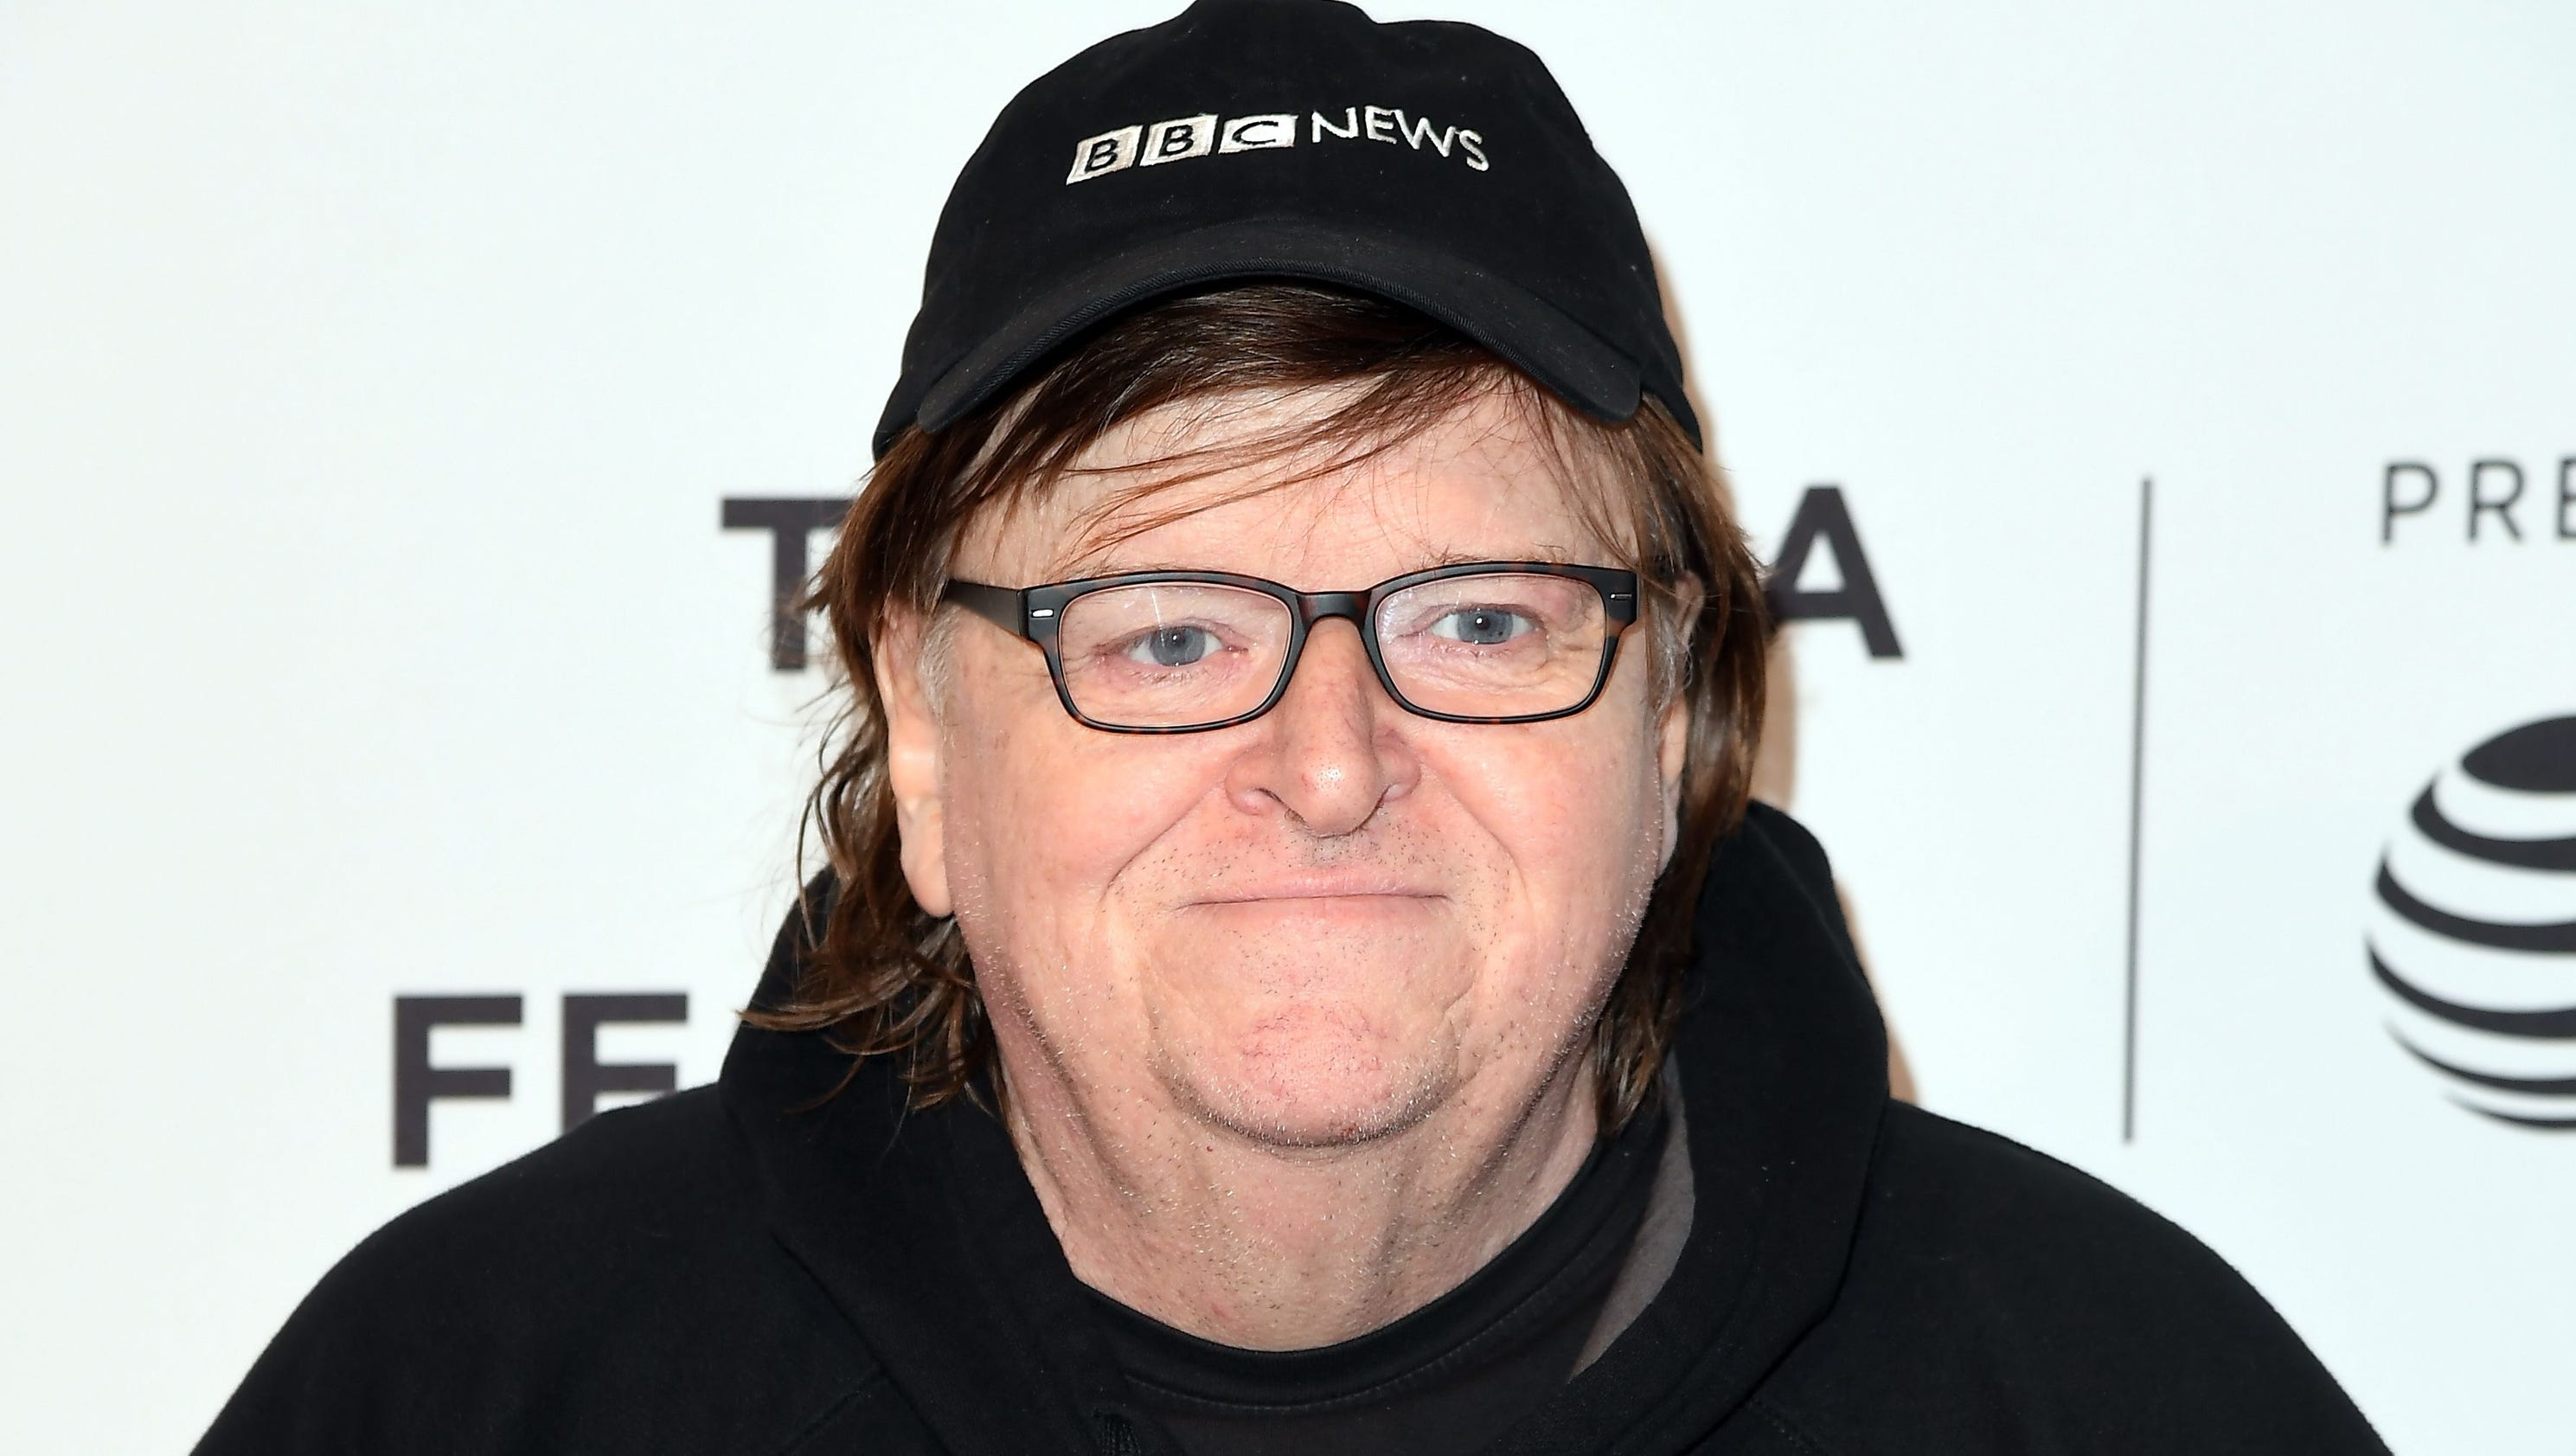 michael moore on bill oreilly im still standing and he